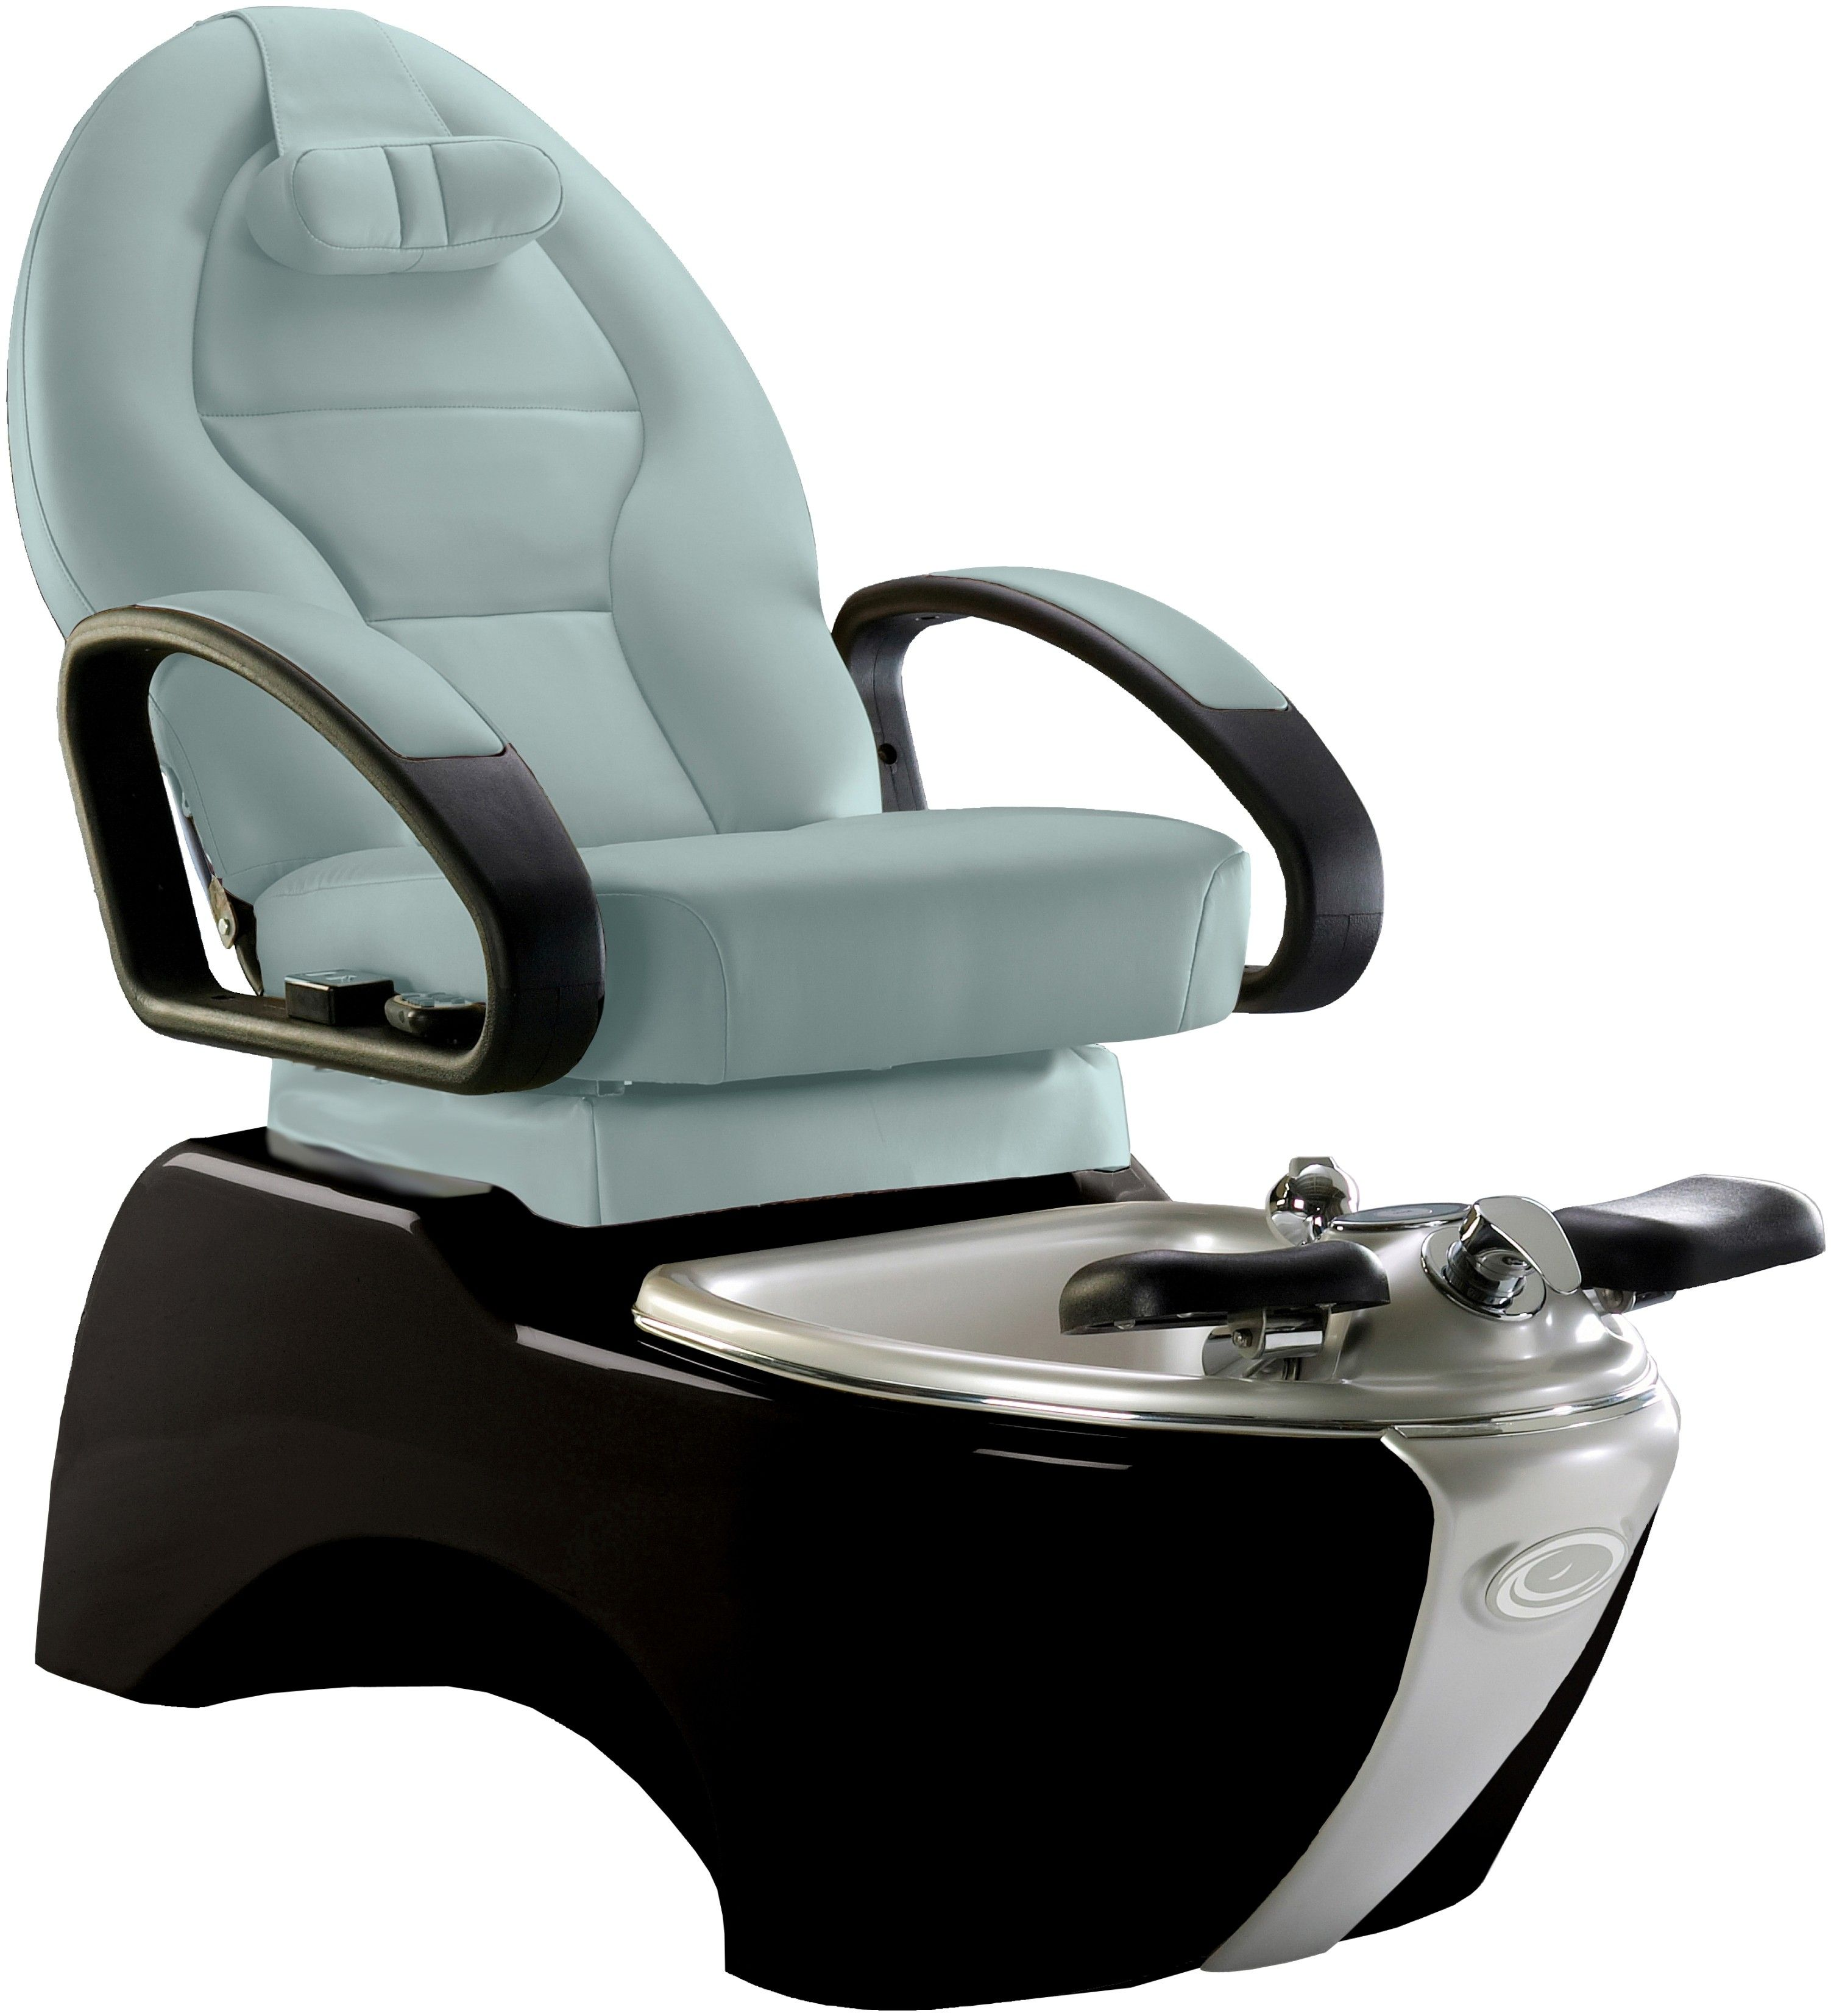 Find out the spa saloon chair at Pedicure Chair Shop | Pedicure ...